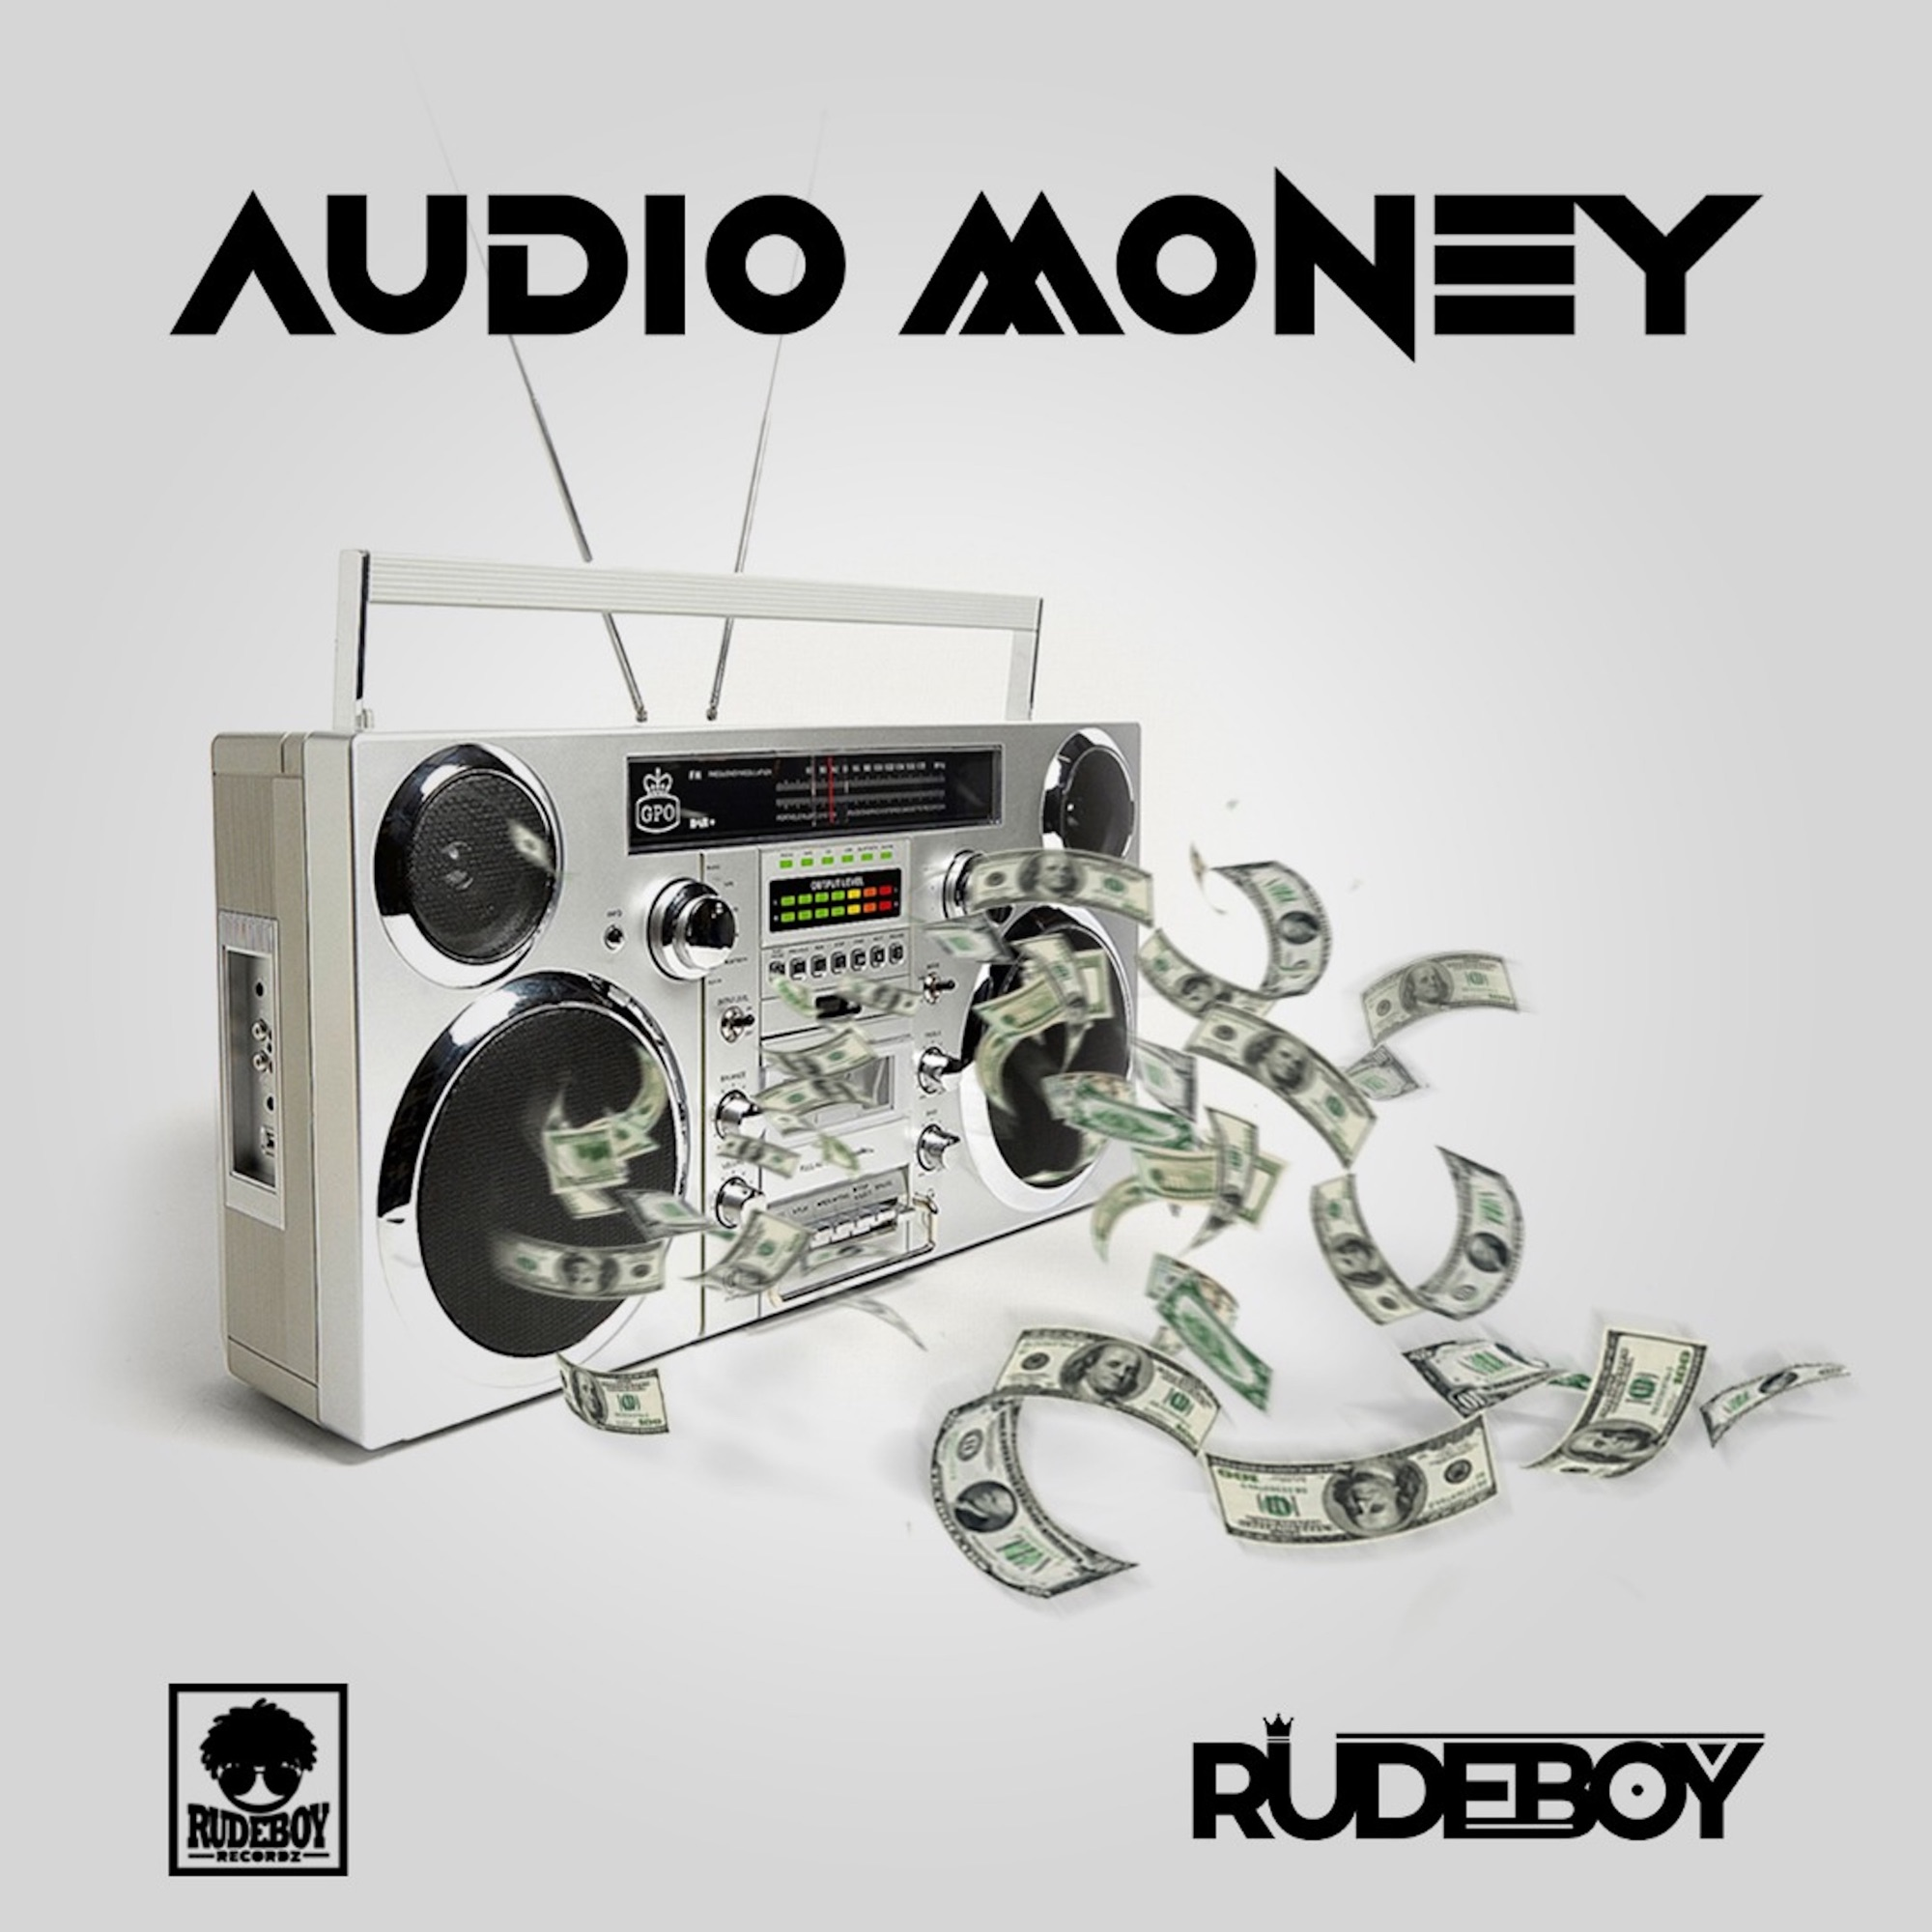 Rudeboy - Audio Money (Prod by Lord Sky)